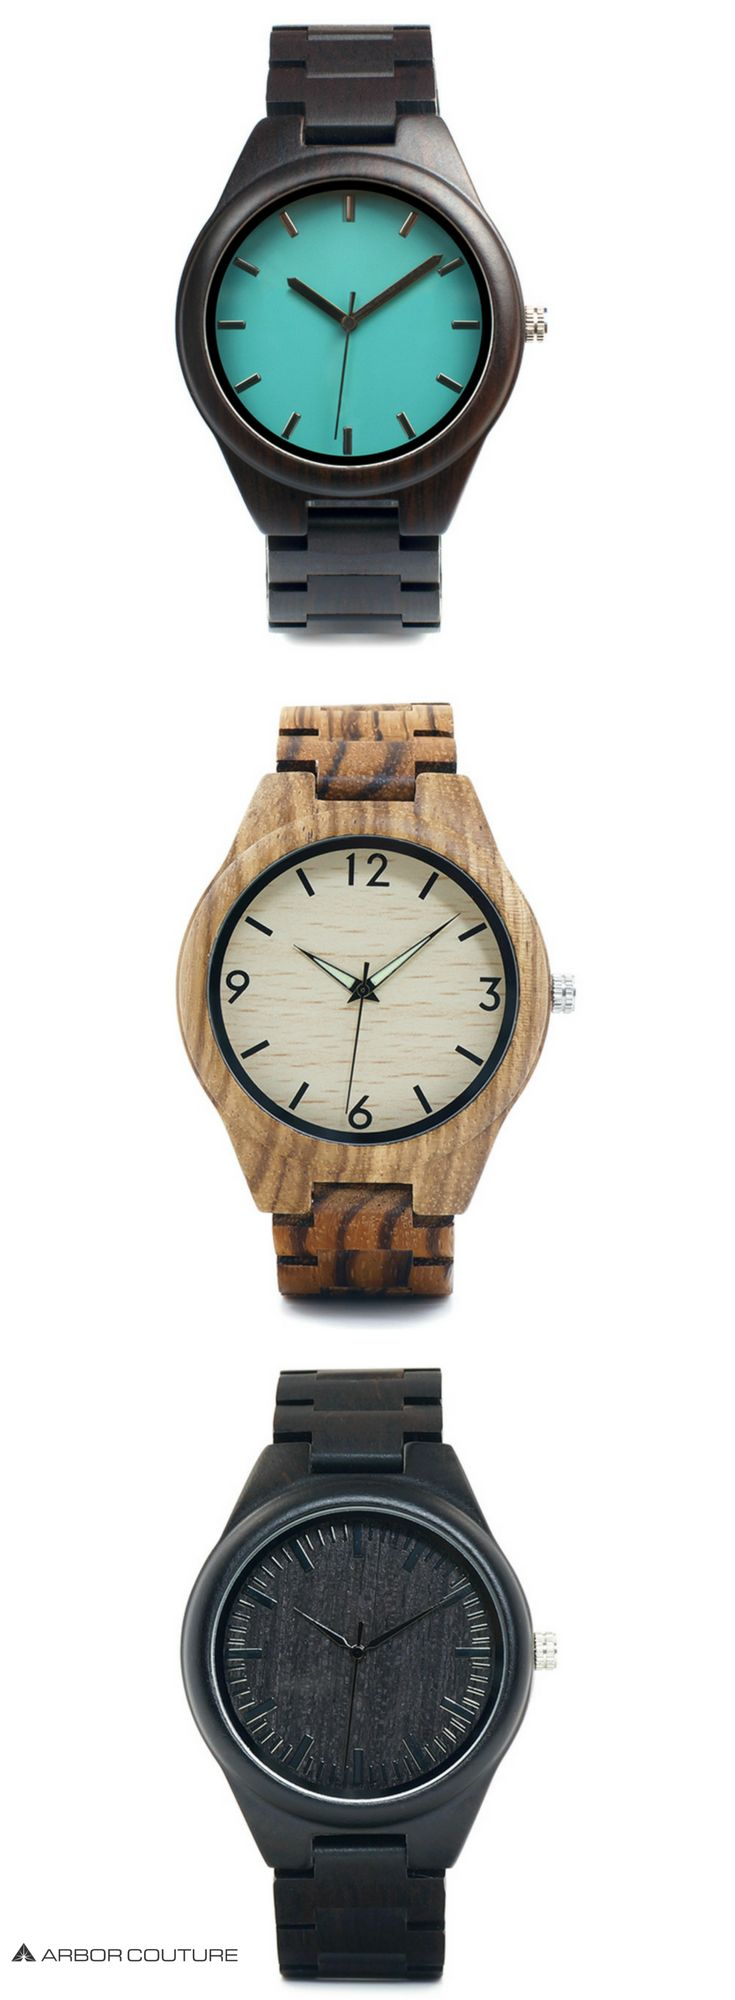 High-quality watches for men made from 100% real wood   www.arborcouture.com   men's watches wood, men's watches wood products, men's watches wood leather, men's watches wood unique, men's watches wood style, men's watches wood anniversary gifts, men's watches wood shops, men's watches wood fashion, men's watches wood trees, men's watches wood guys, men's watches wood internet, men's watches wood awesome   #menswatches #watchesformen